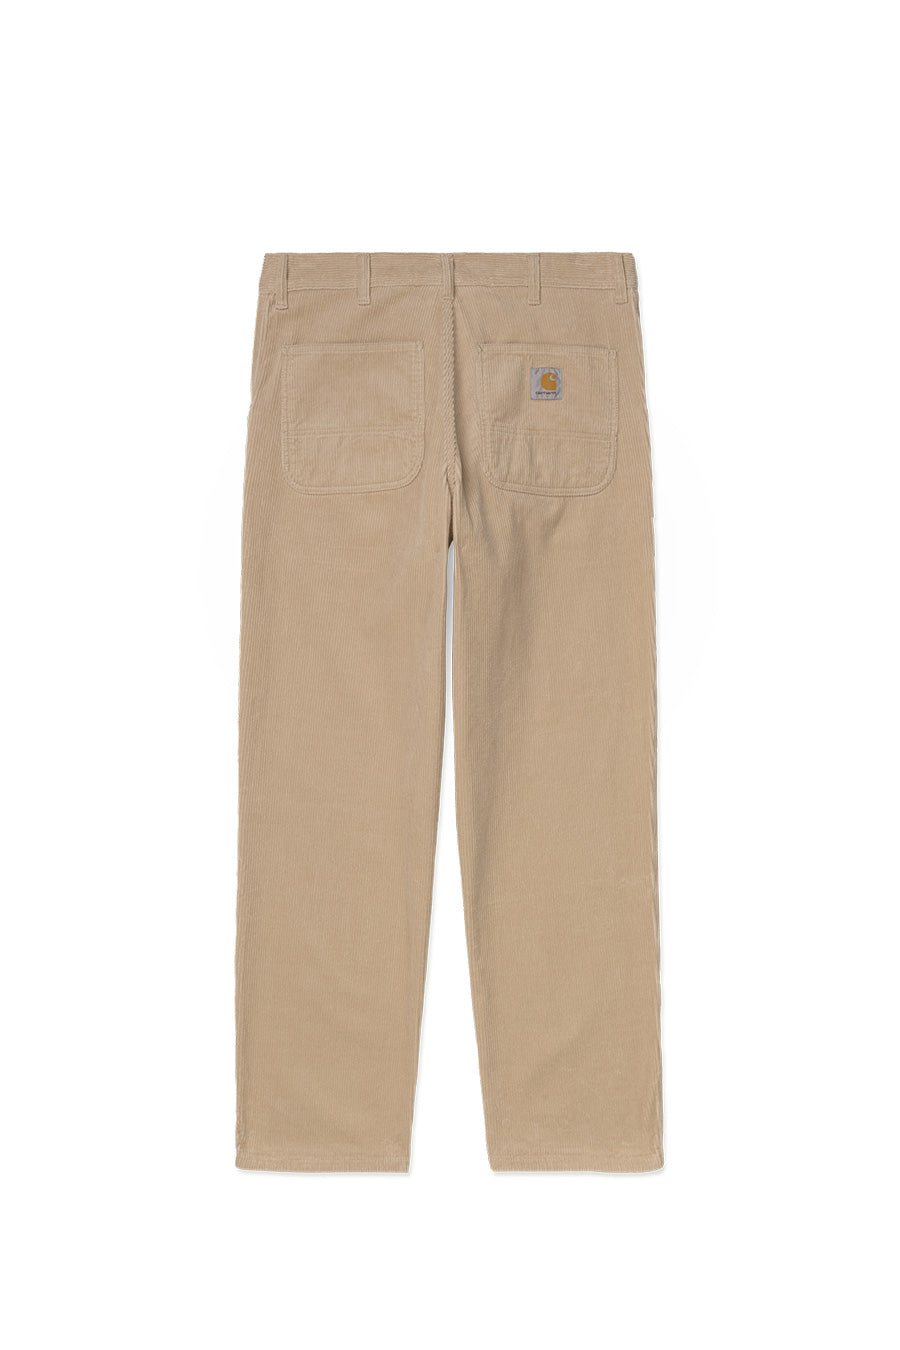 Carhartt WIP - Wall Tan Simple Pant Corduroy | 1032 SPACE